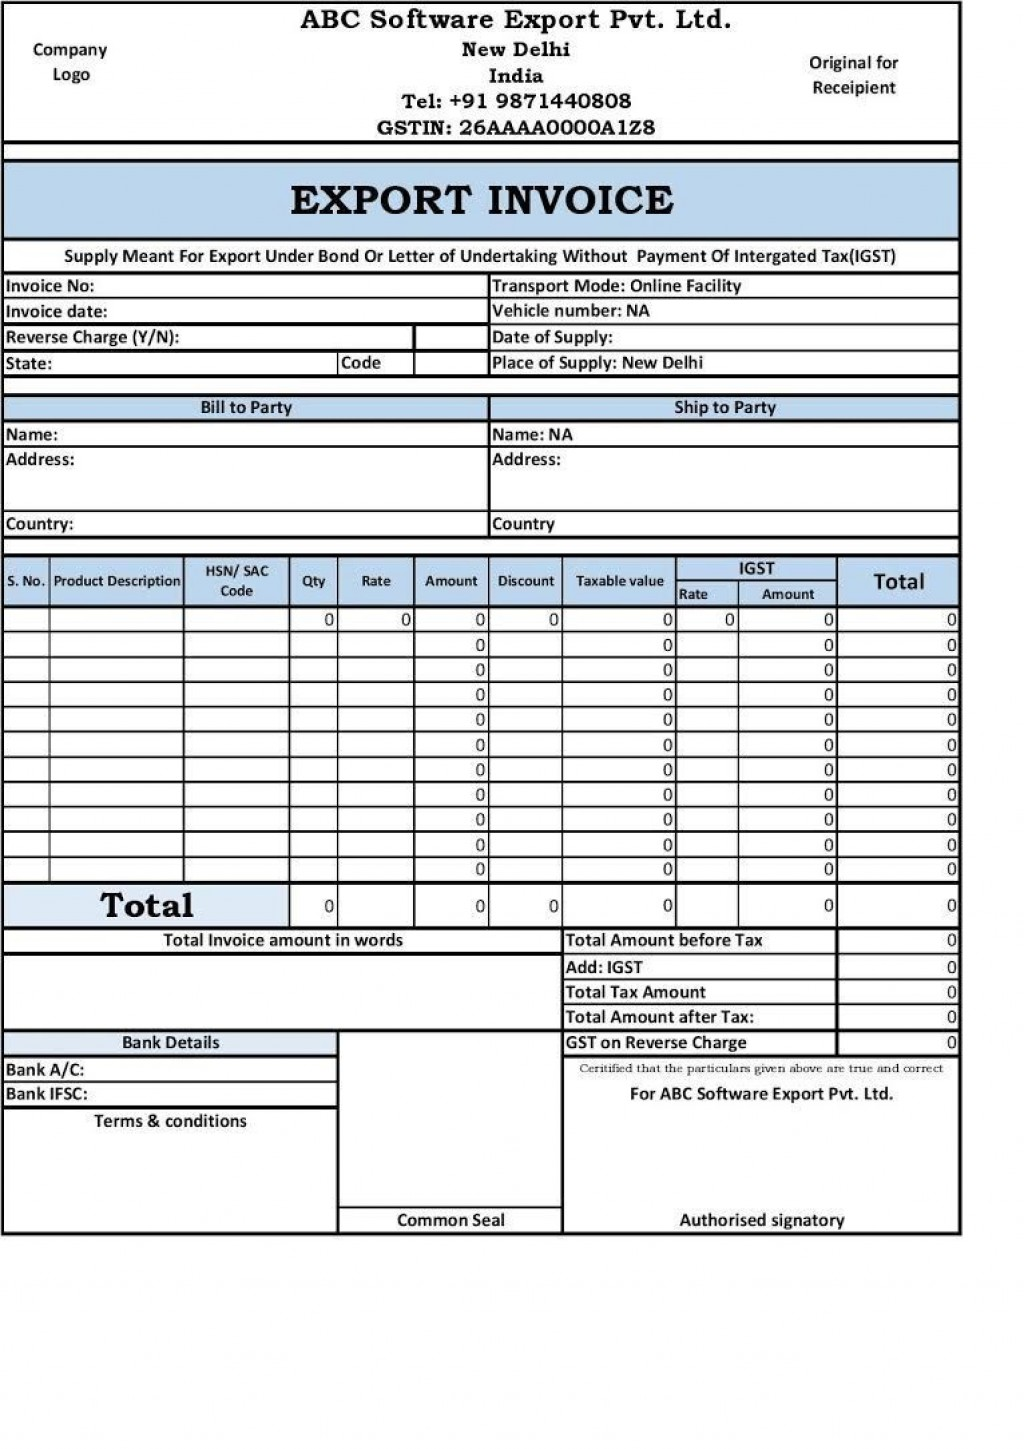 002 Amazing Free Excel Invoice Template Gst India Image Large